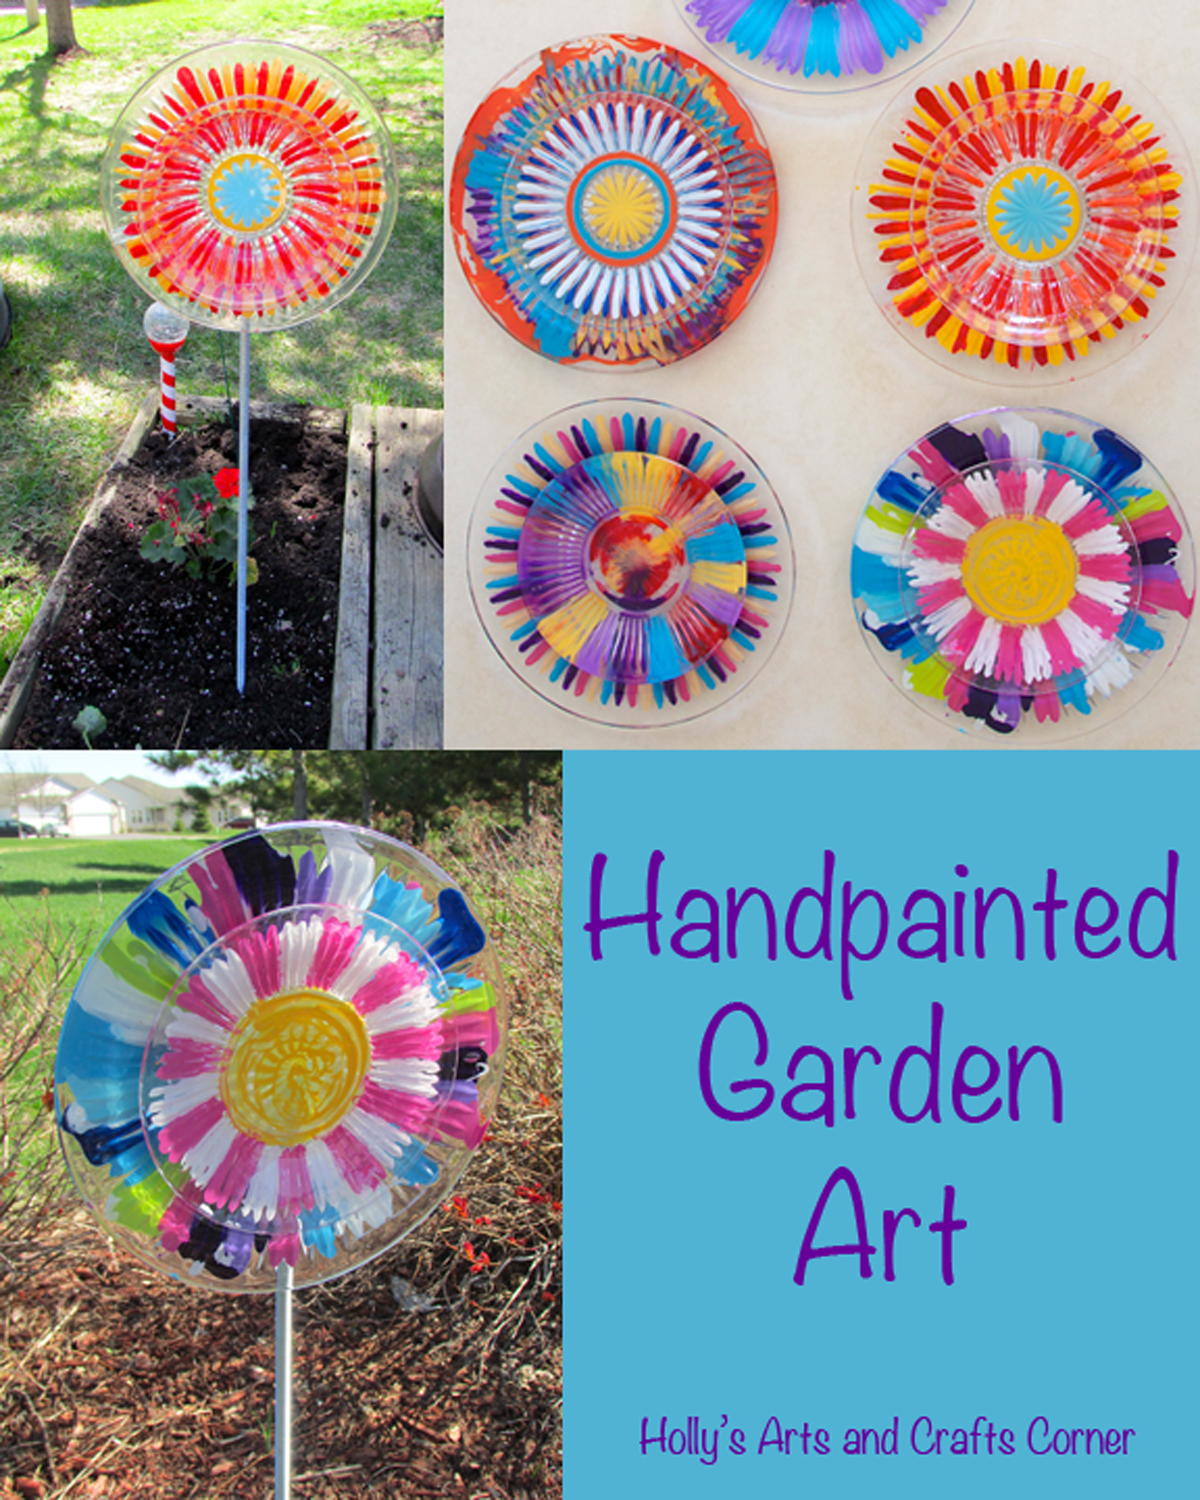 Hollys Arts and Crafts Corner Craft Project Handpainted Garden Art